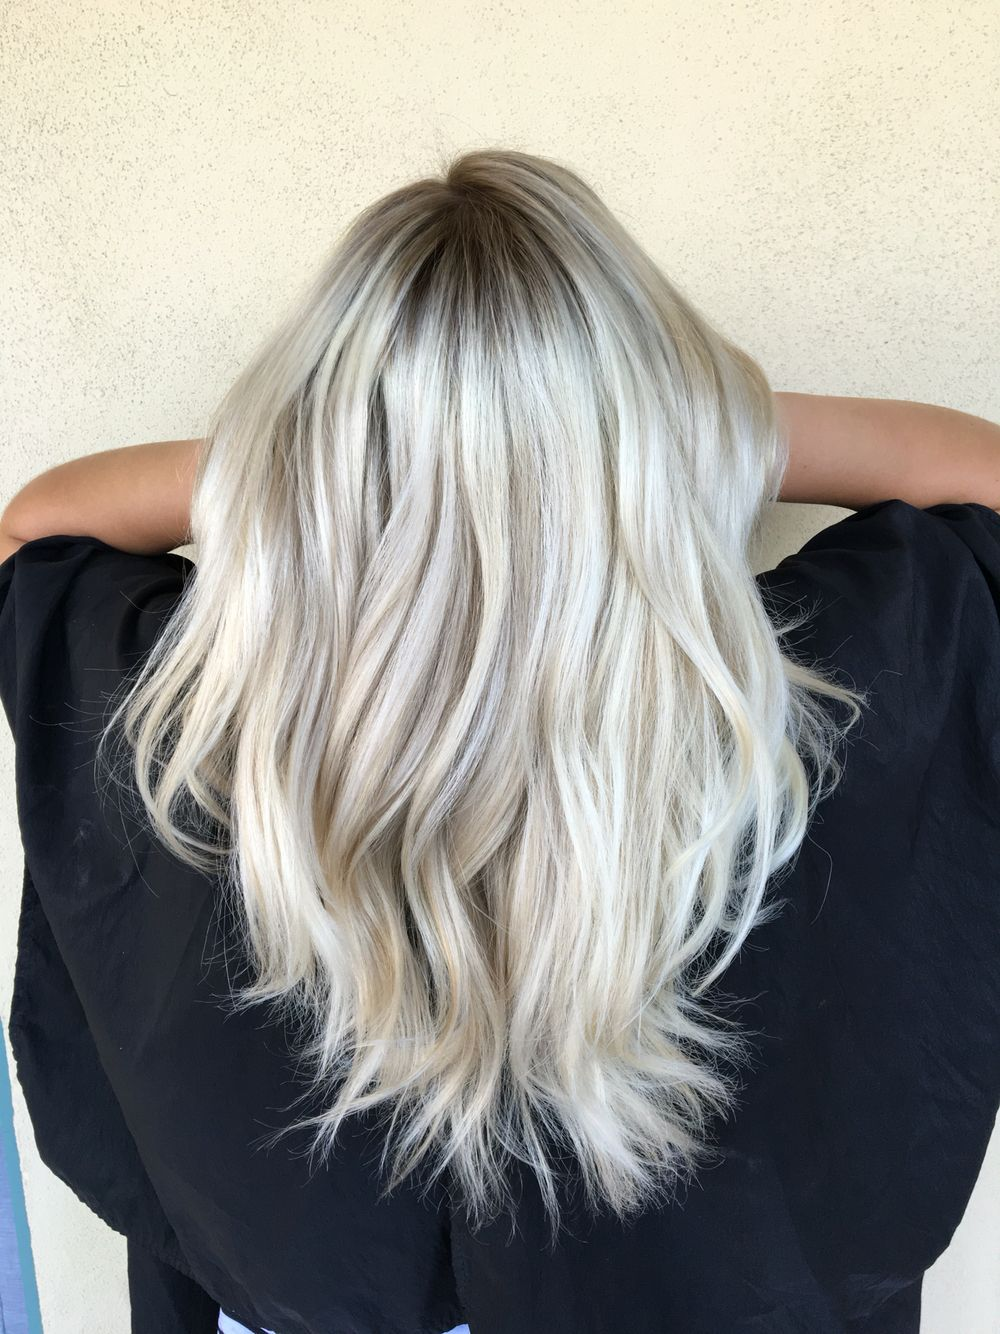 Amazing Icy Blonde Hair Ash Blonde Wavey Hair Done By Alexaa3 In